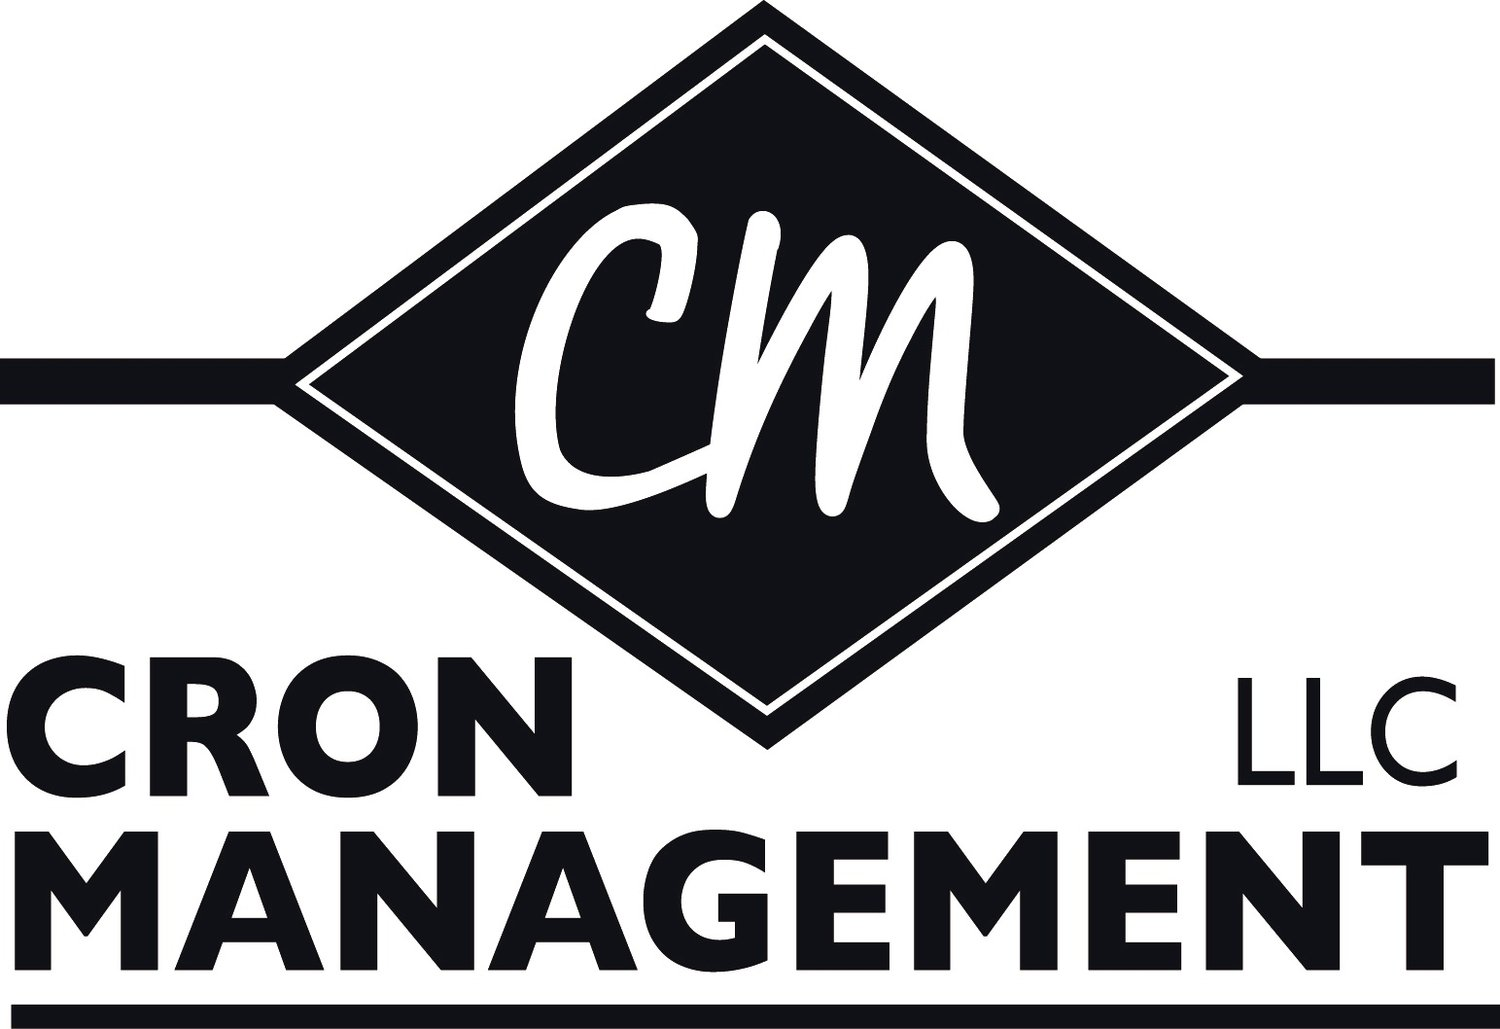 Cron Management